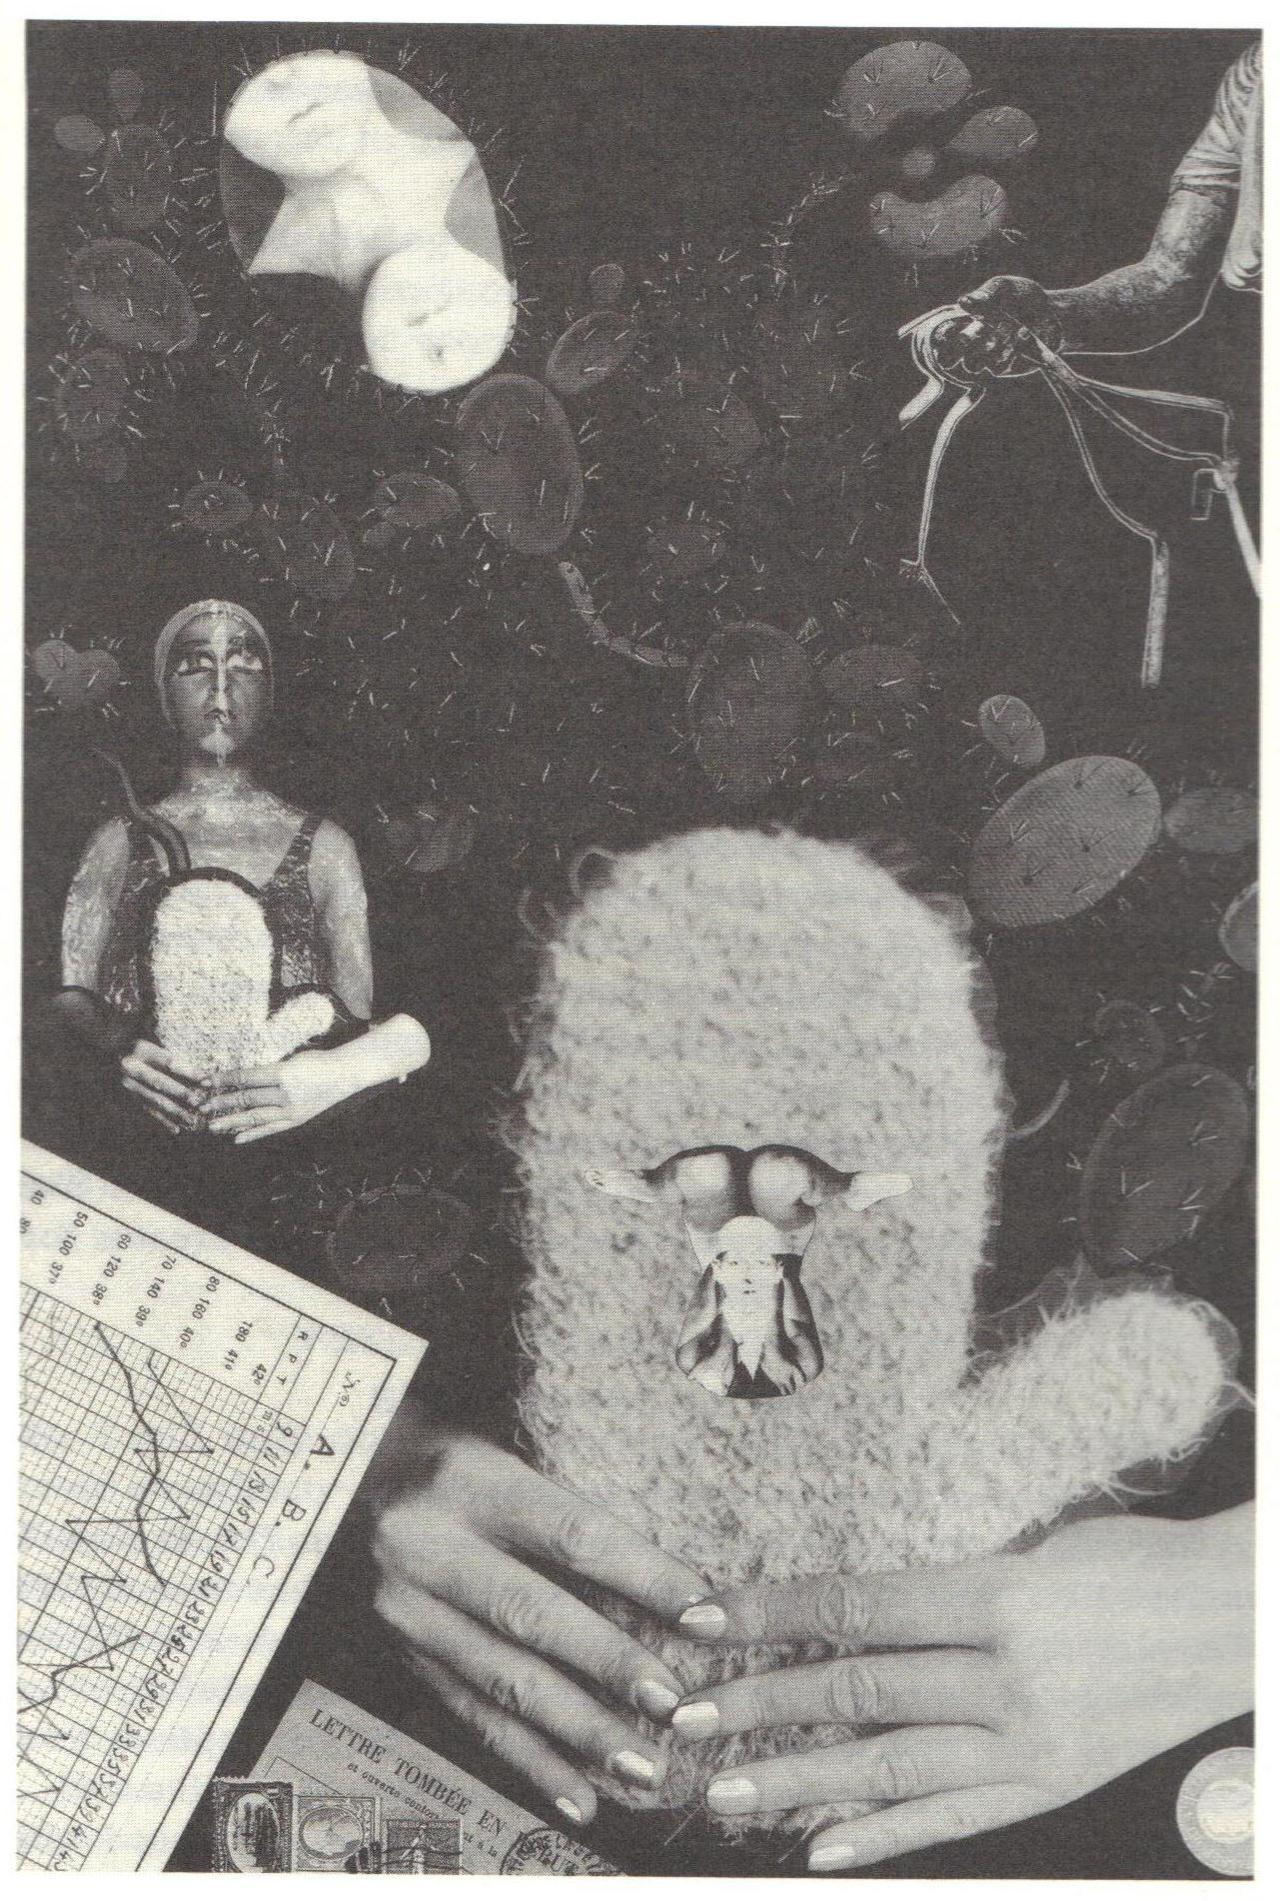 Love Claude Cahun. realityayslum:  Claude Cahun, Collage, c.1930. … from Disavowels : or, cancelled confessions (Aveux non avenus), 1930, by Claude Cahun, MIT Press, 2008.